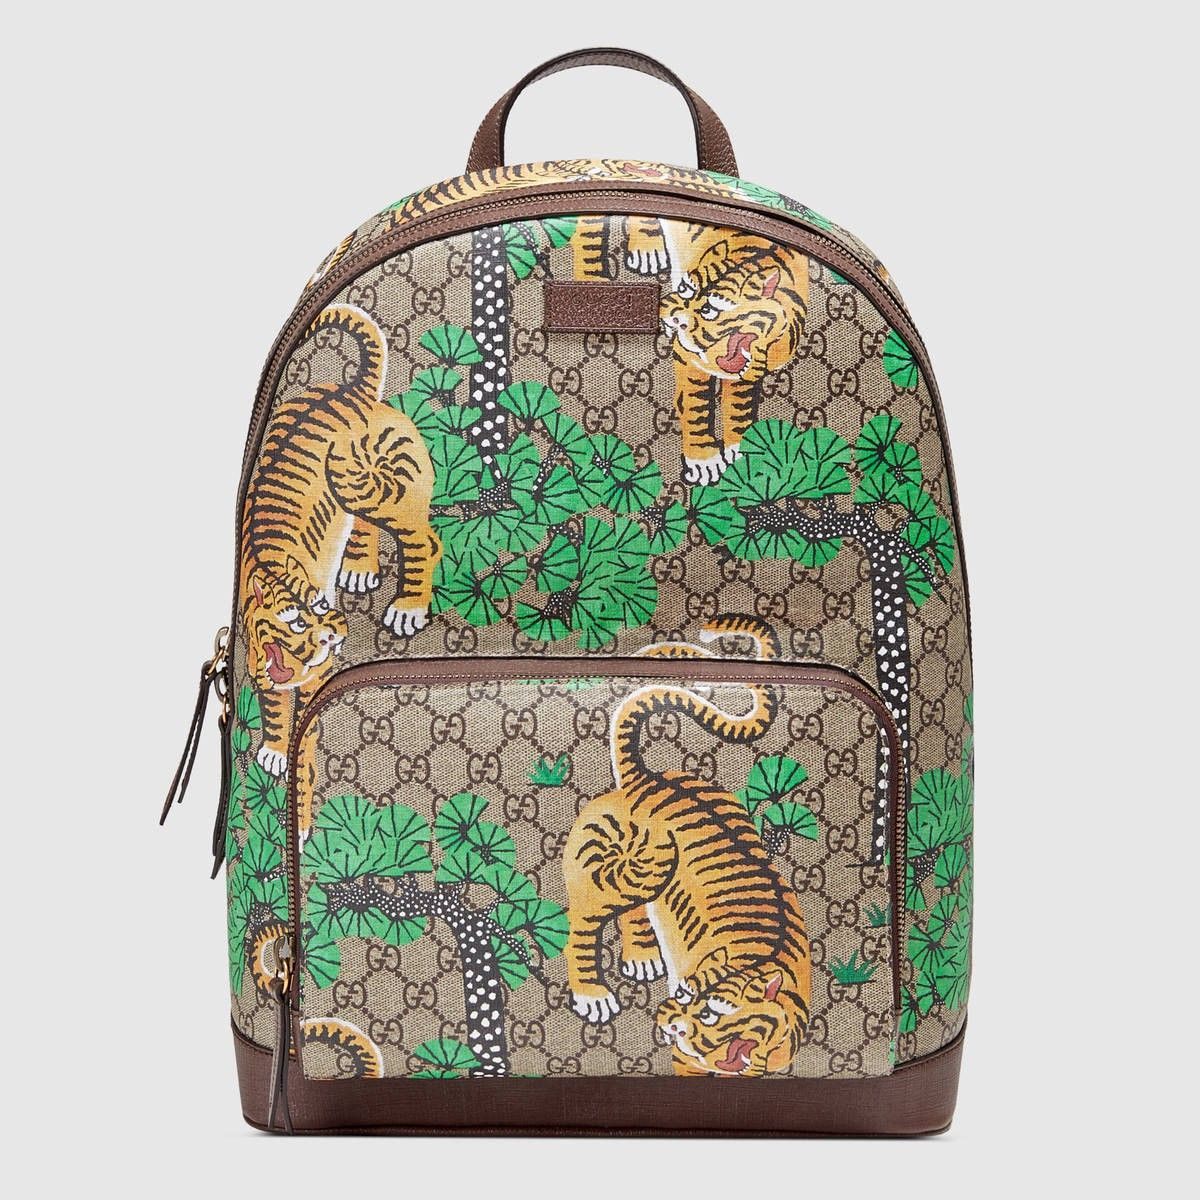 5de418538b7e GUCCI Gucci Bengal Gg Supreme Backpack - Gucci Bengal Print.  gucci  bags   lining  canvas  backpacks  suede